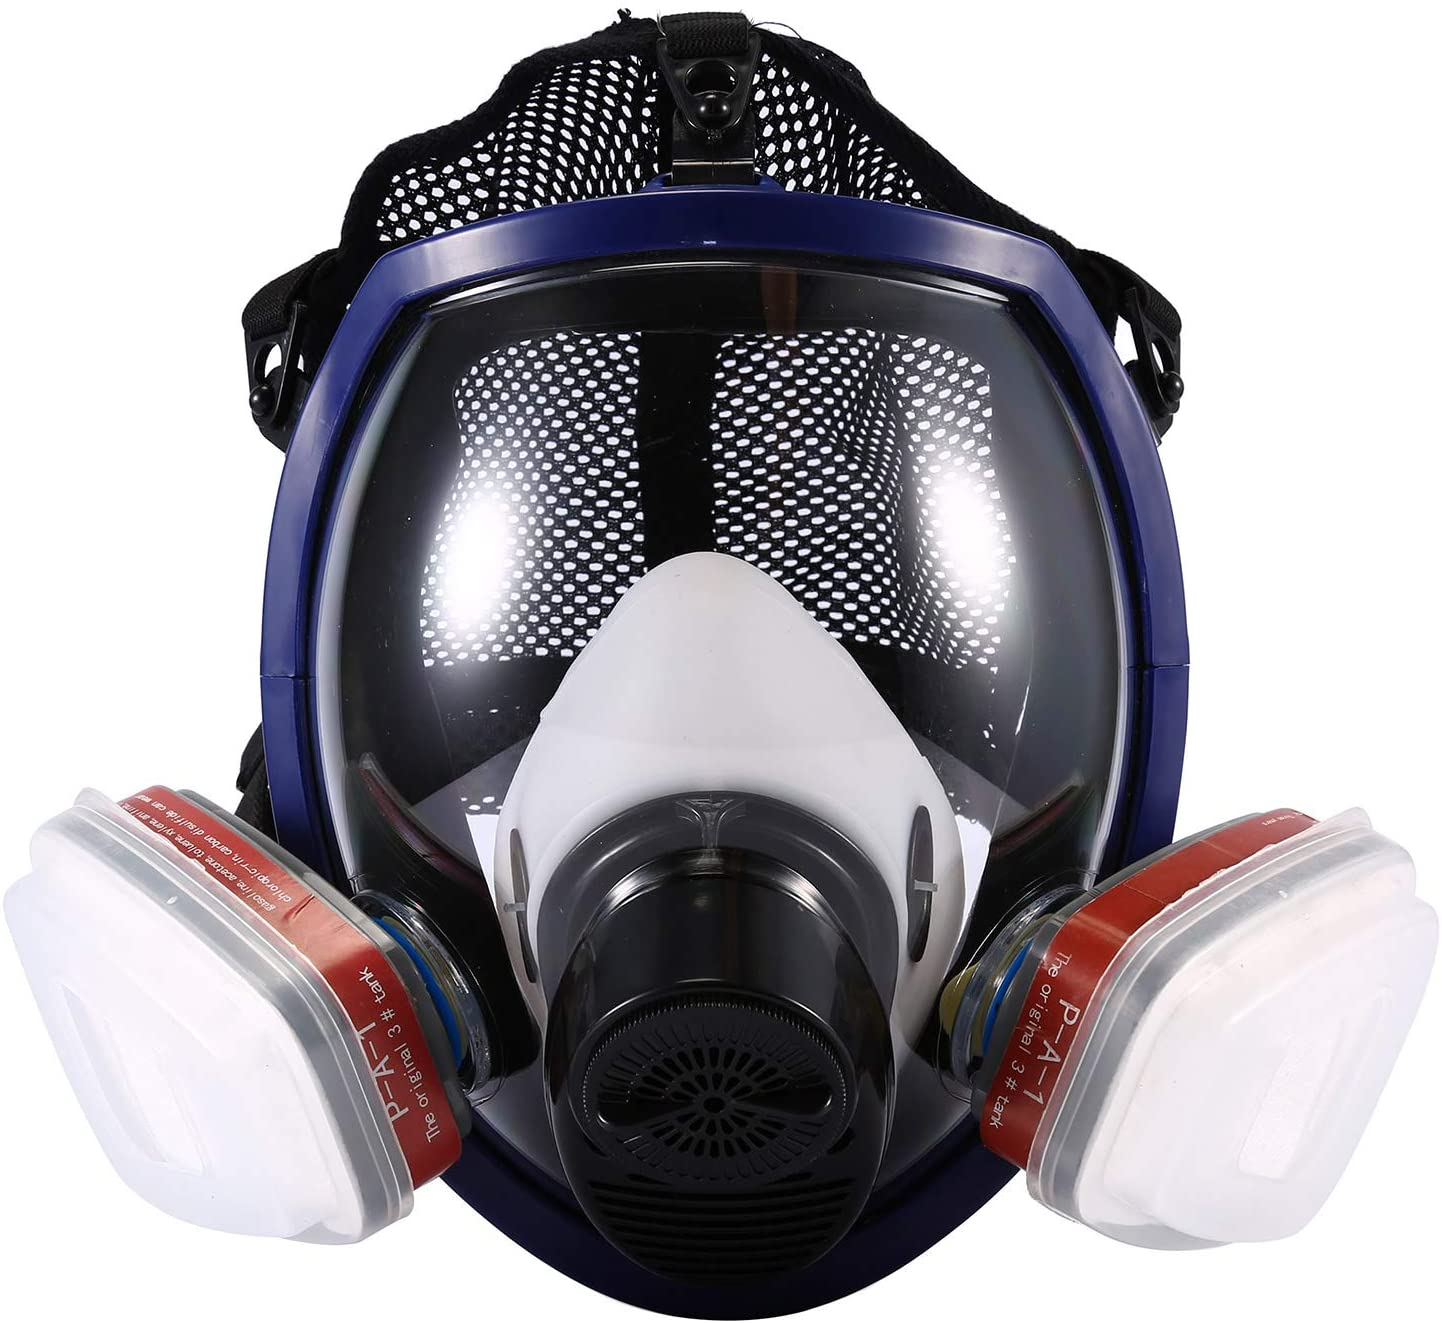 Air Cartridge Paint Filter Enjohos Industrial Double Mask Face For Vapor Respirator Organic Painting Full Spraying Grade Dust